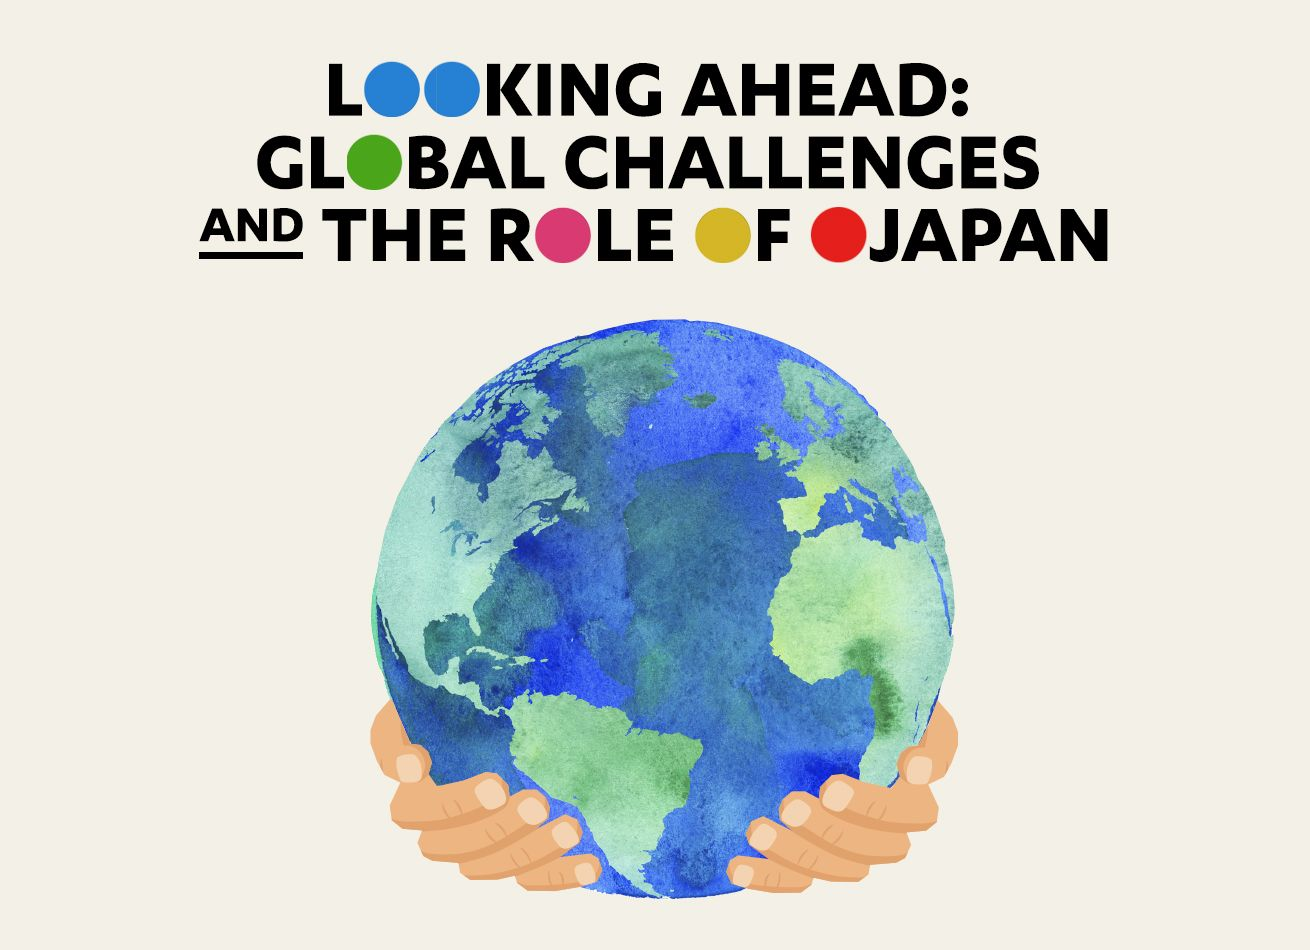 Looking Ahead: Global Challenges and the Role of Japan